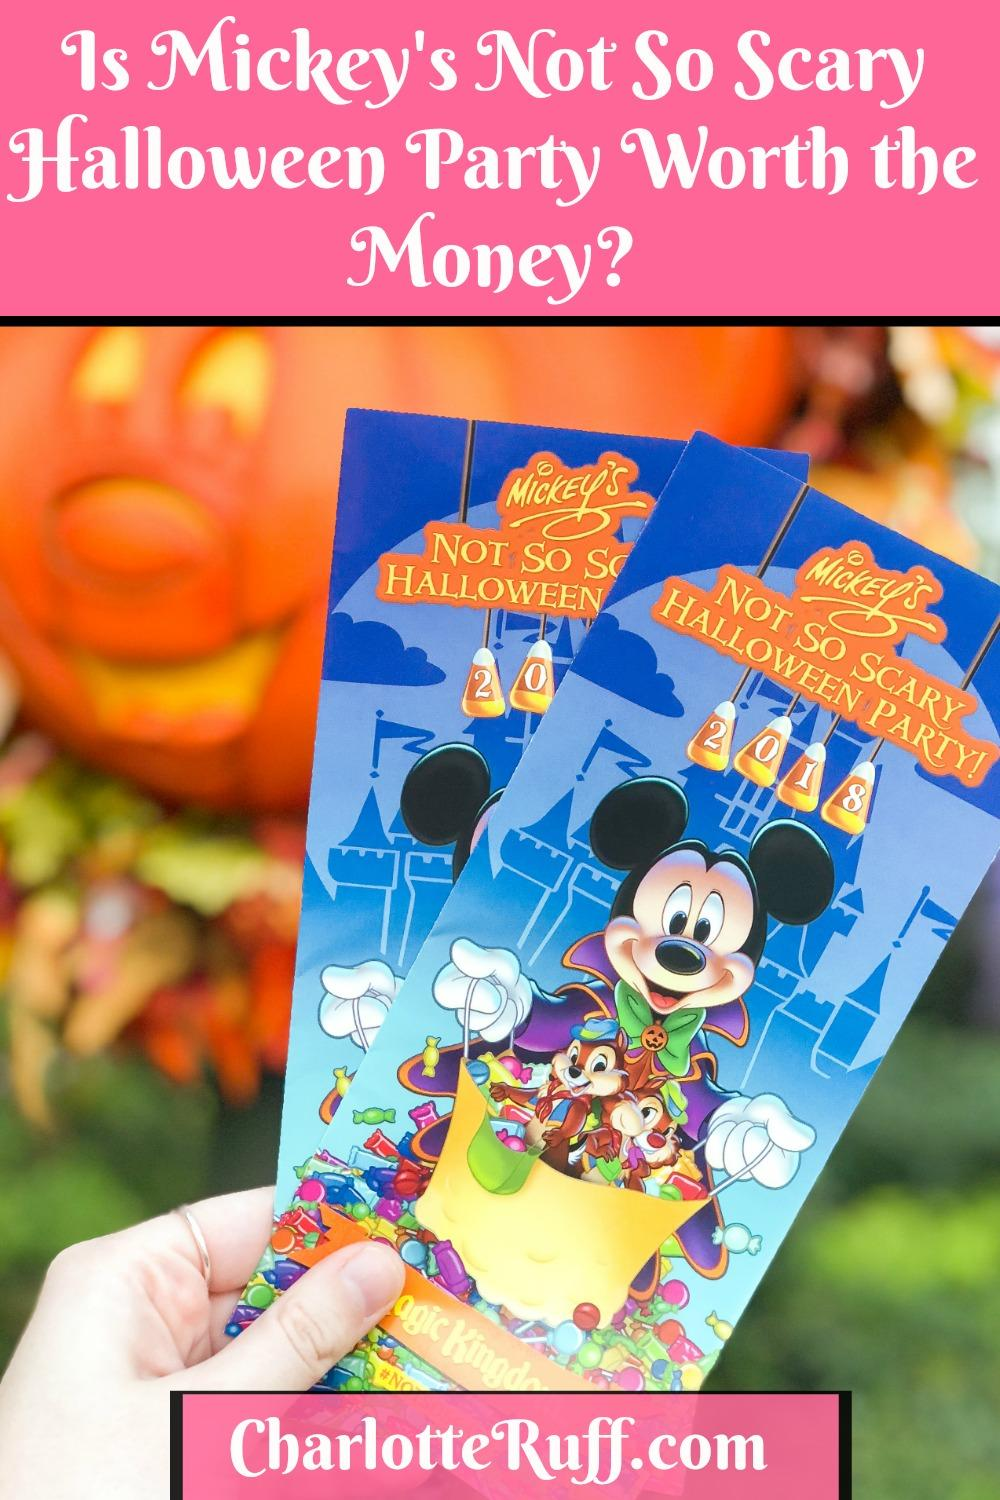 Is Mickey's not so scary halloween party worth the money?